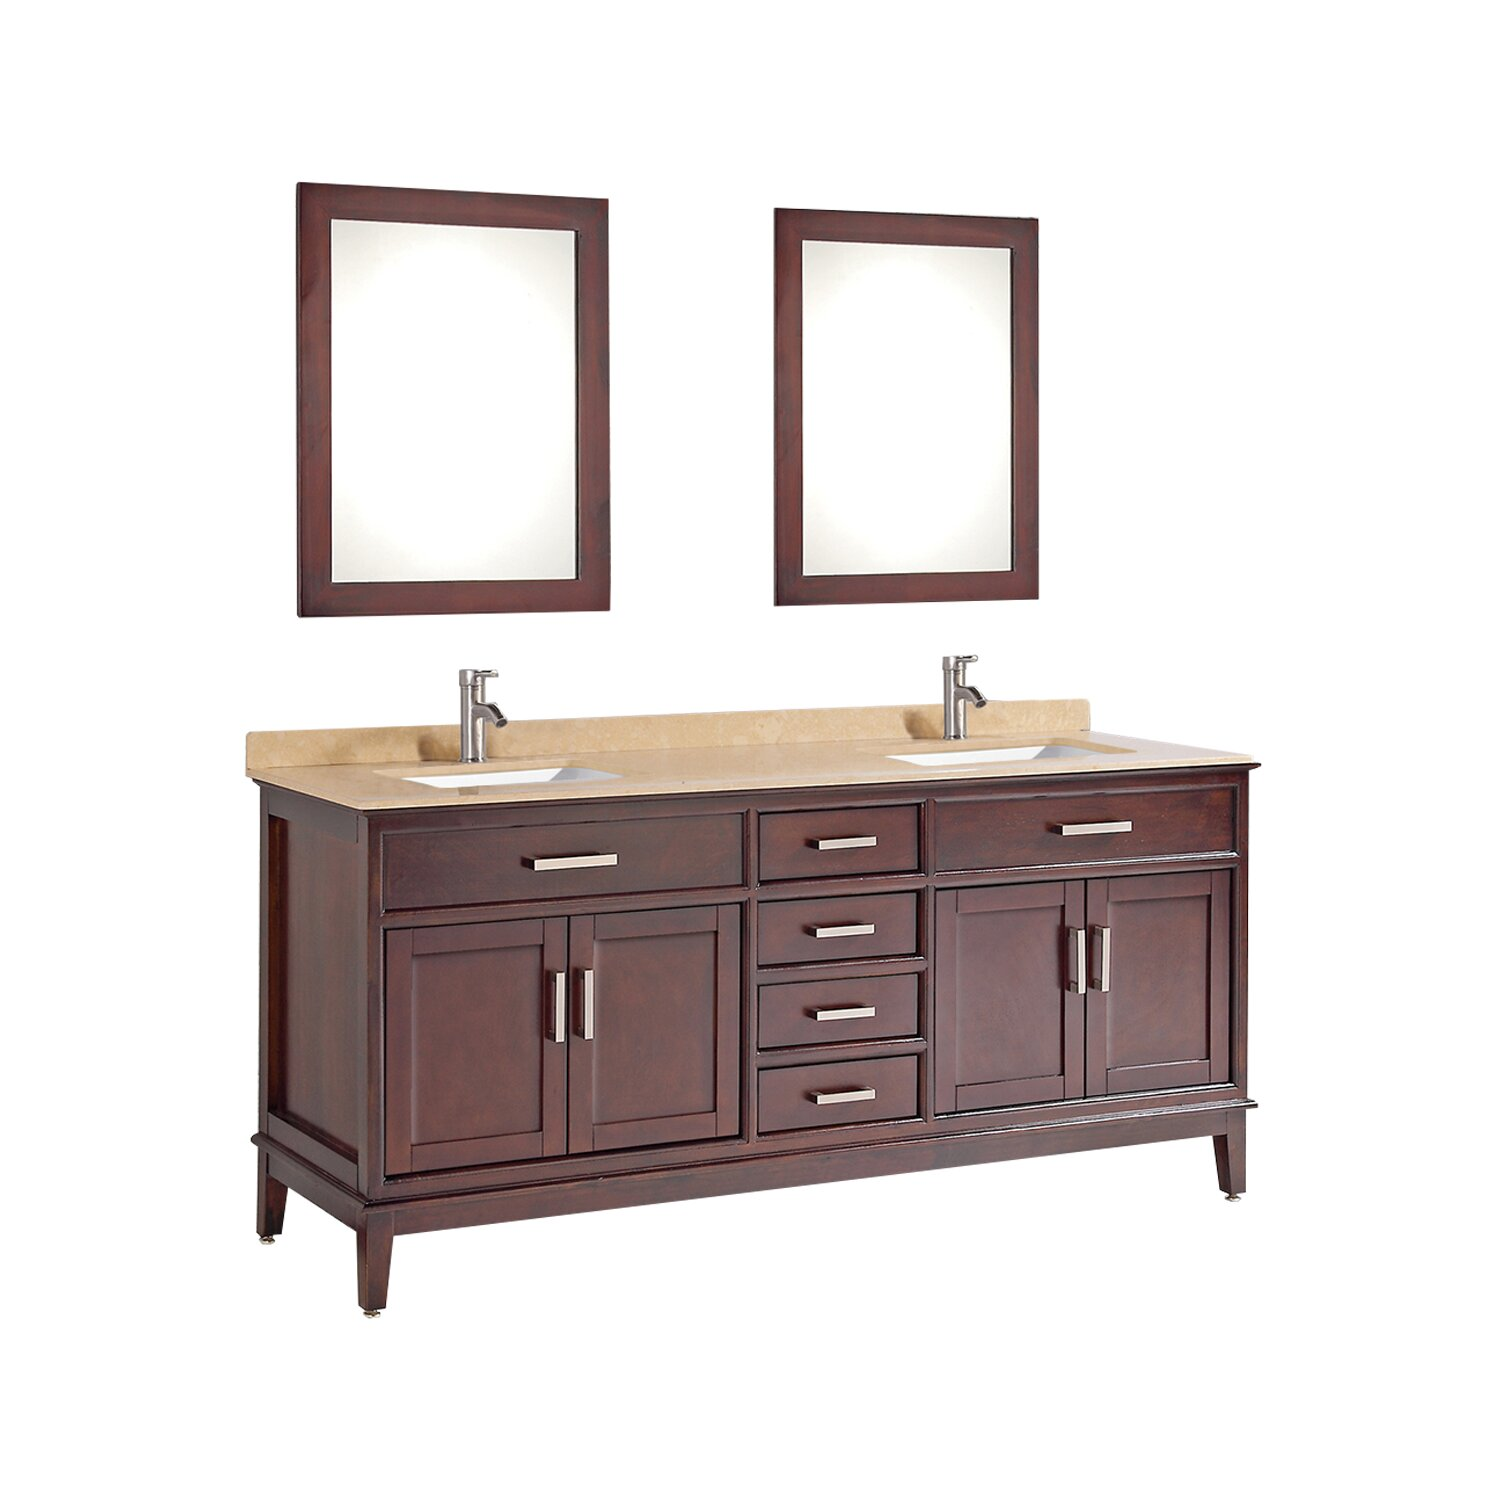 Mtdvanities sierra 59 8 double bathroom vanity set with for Bath and vanity set